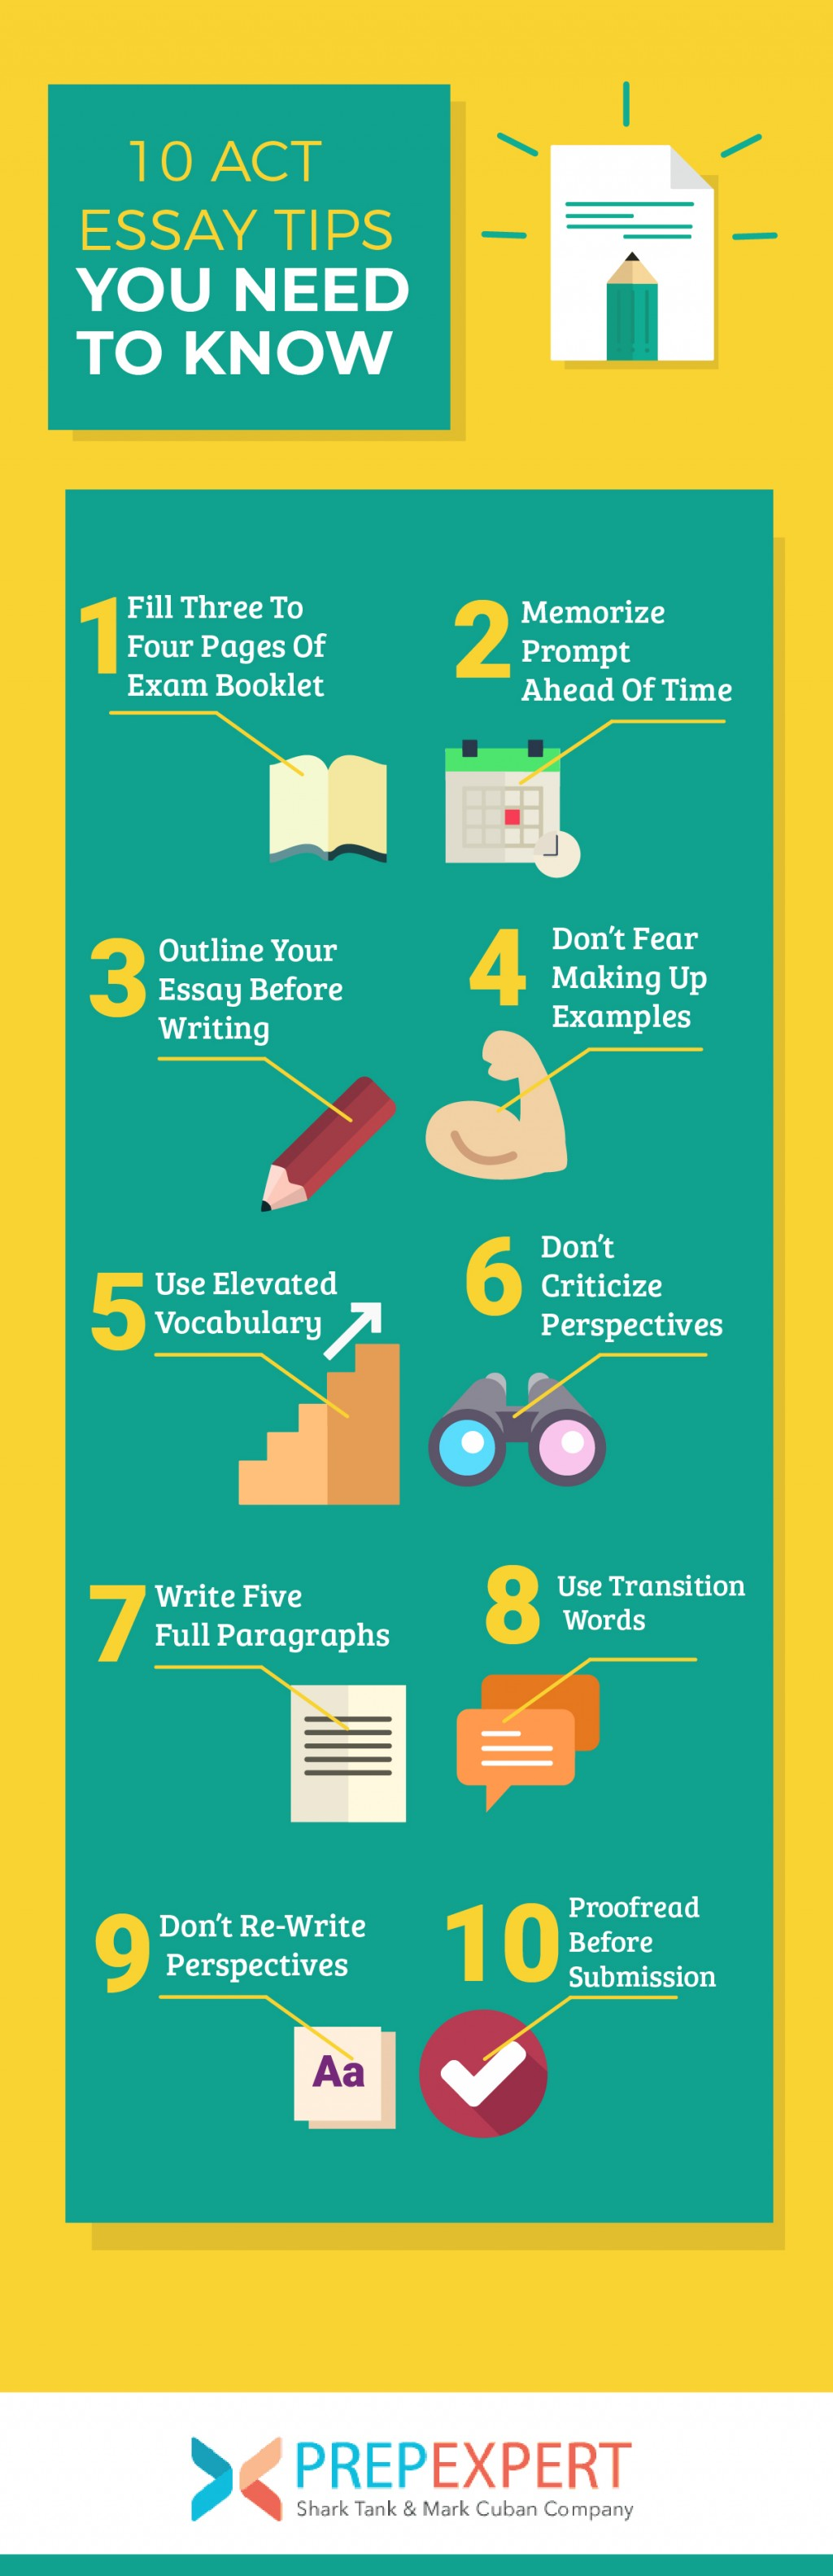 017 Essay Example Act 235585 Essayinfographics 052918 Fearsome New Time Limit Rubric Tips Large